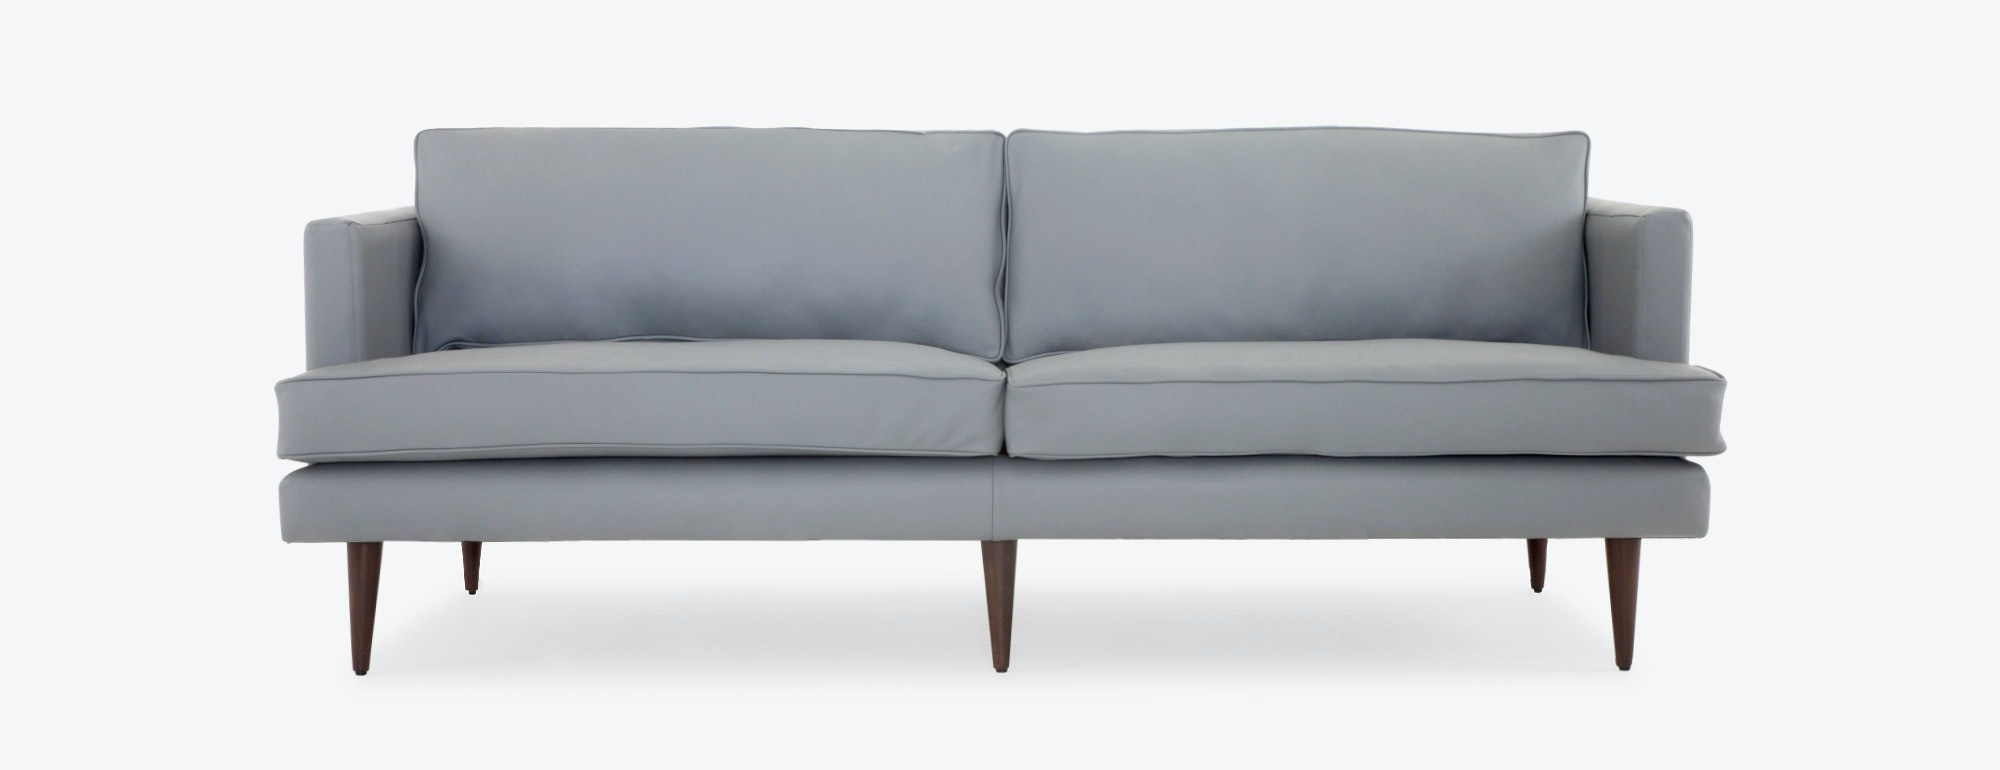 Preston Leather Sofa Joybird